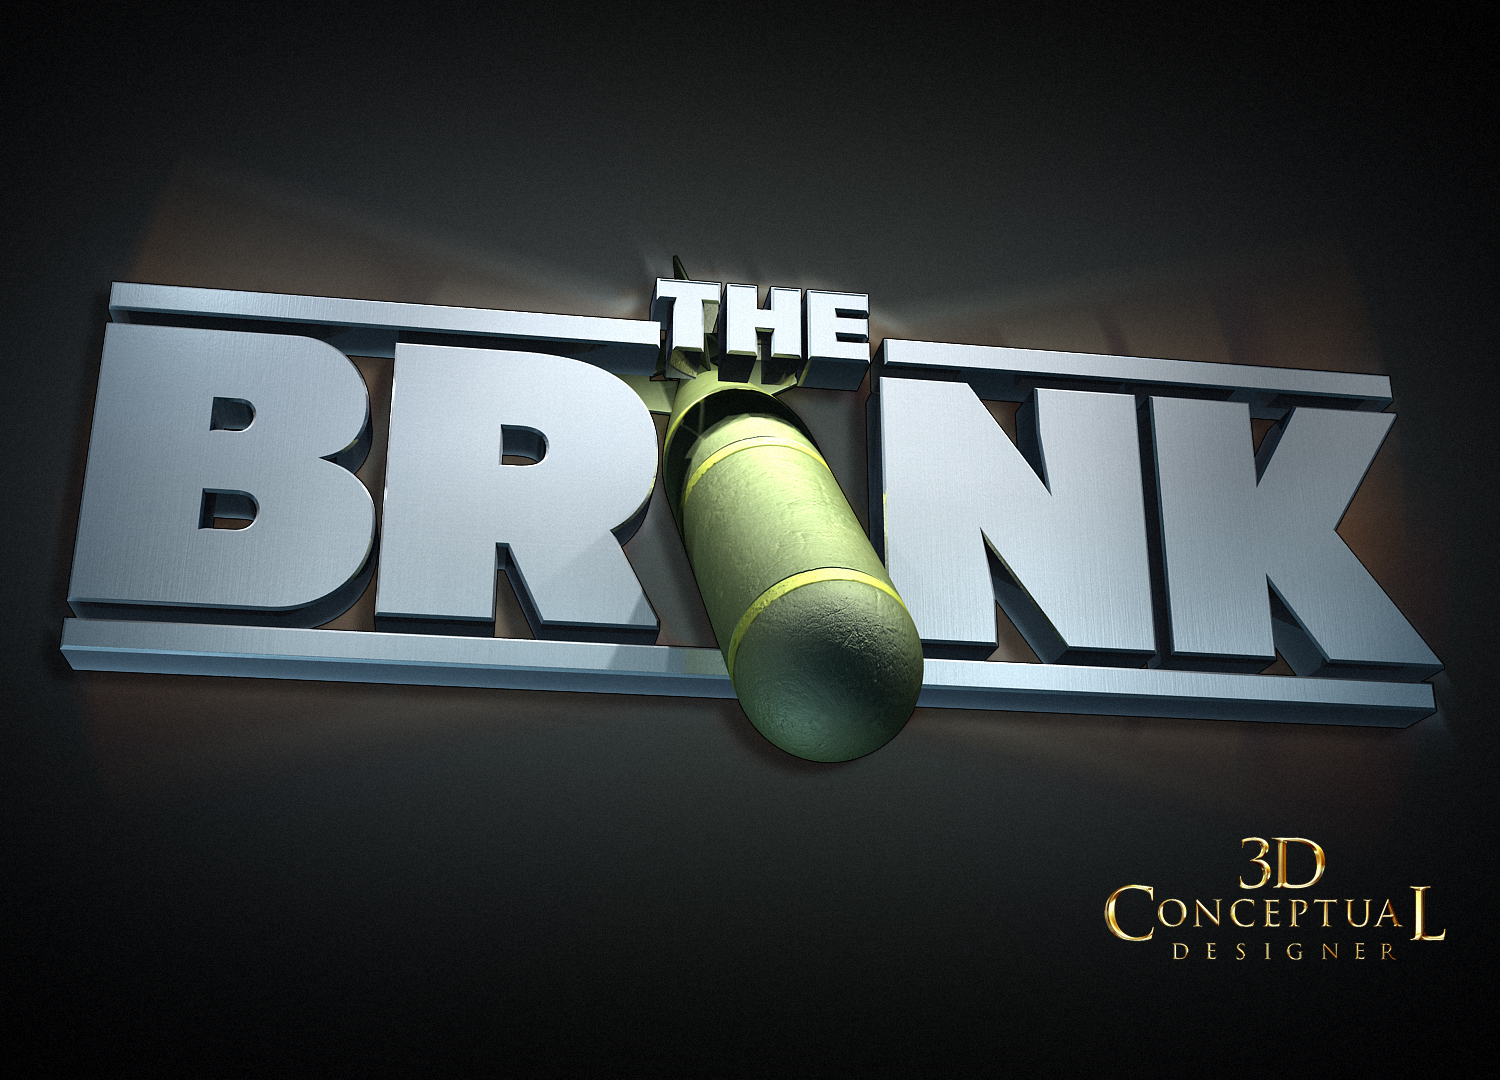 3dconceptualdesignerblog project review the brinkkey